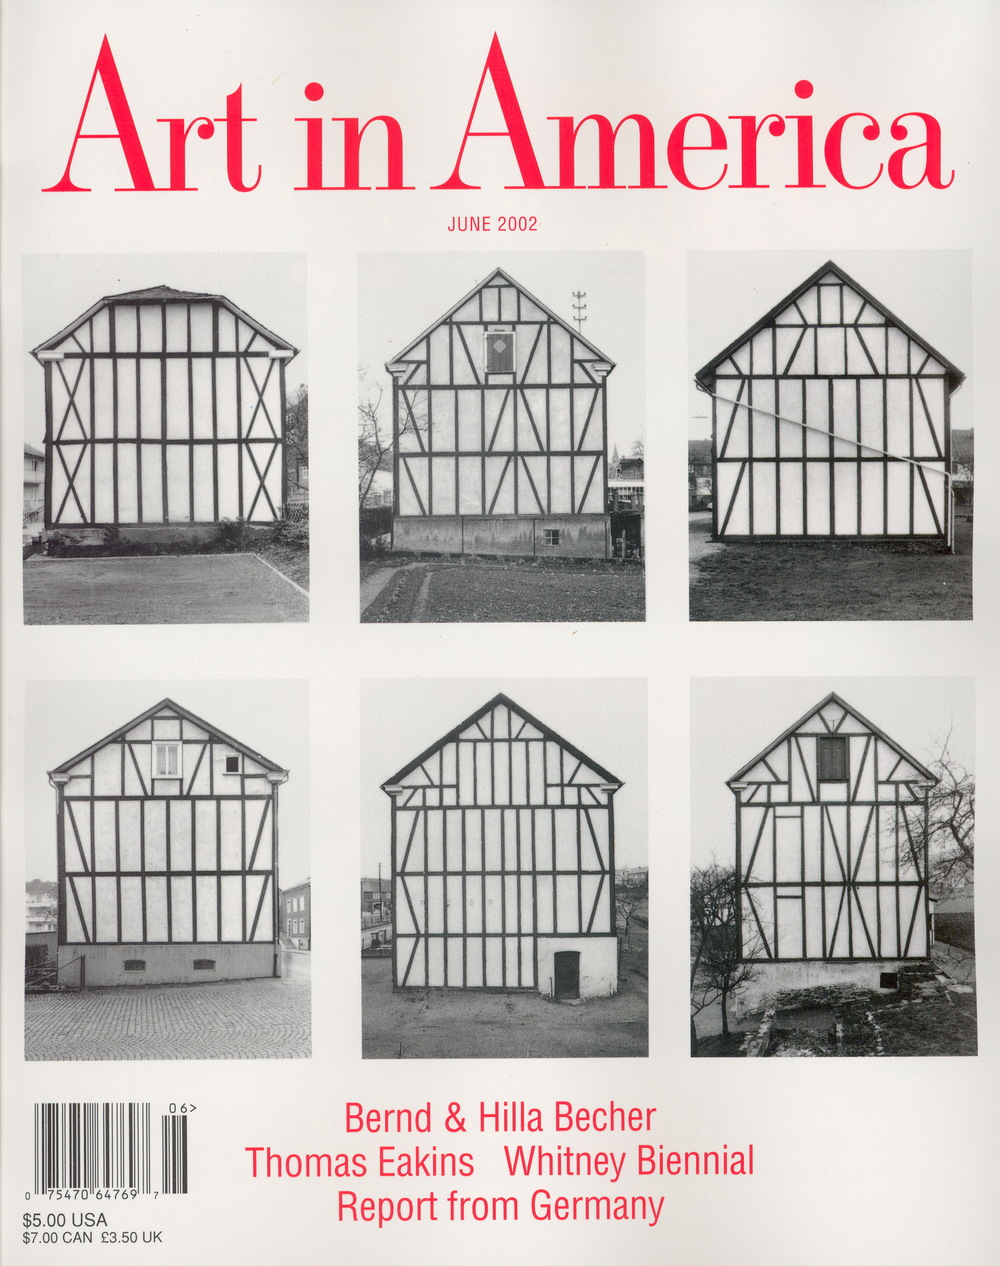 Art in America Cover.jpg